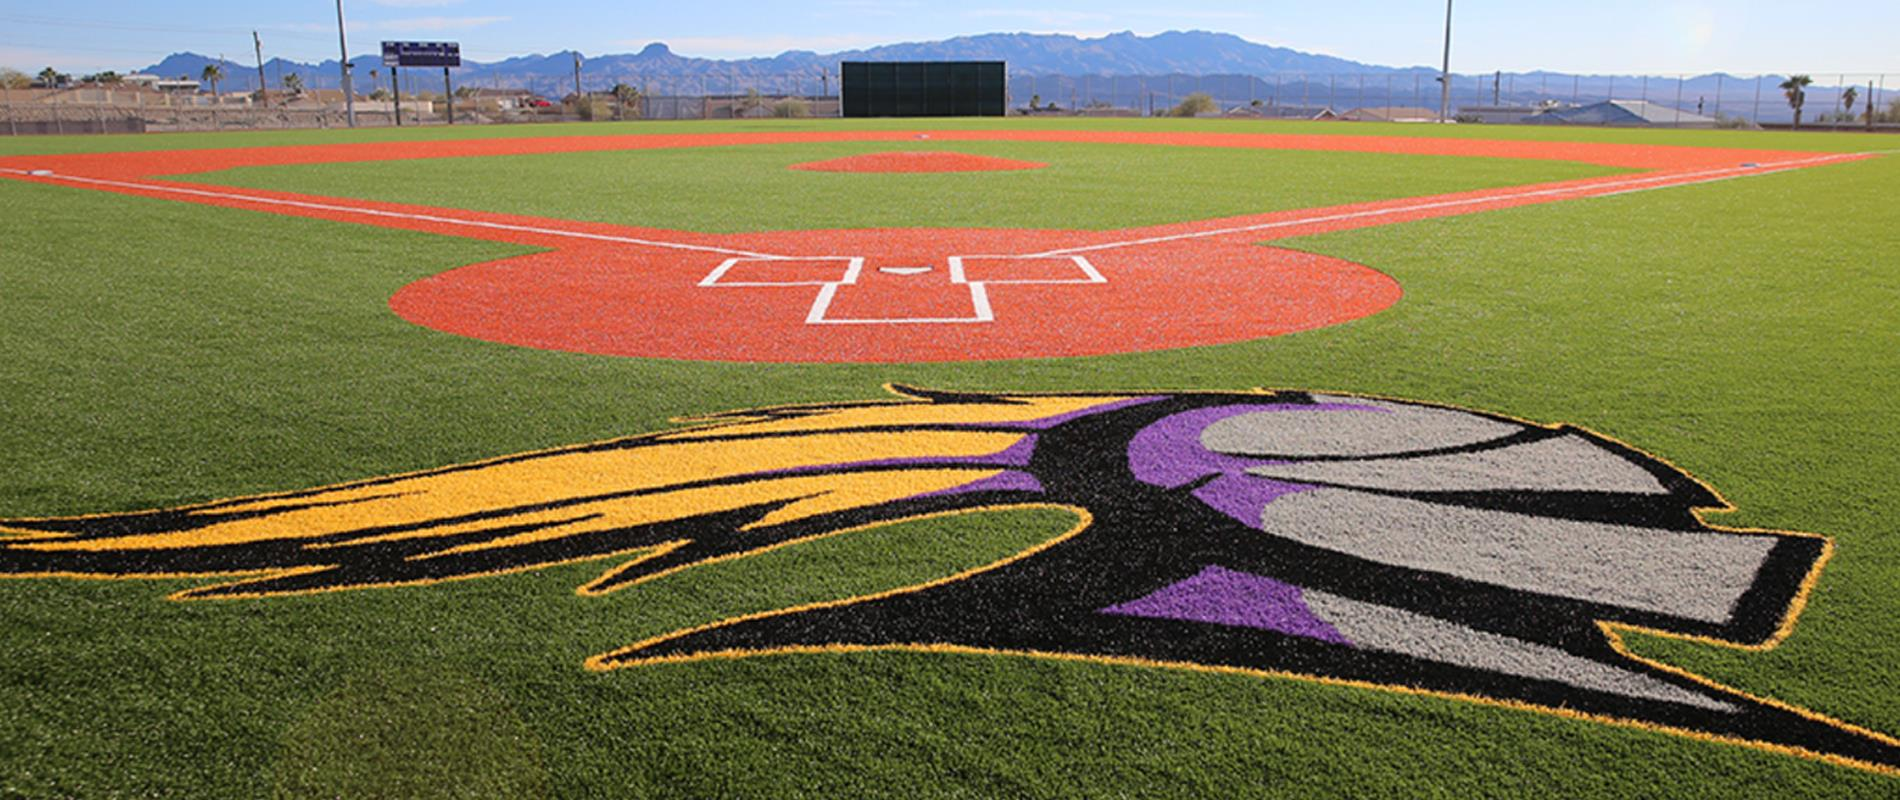 picture of new LHHS baseball field